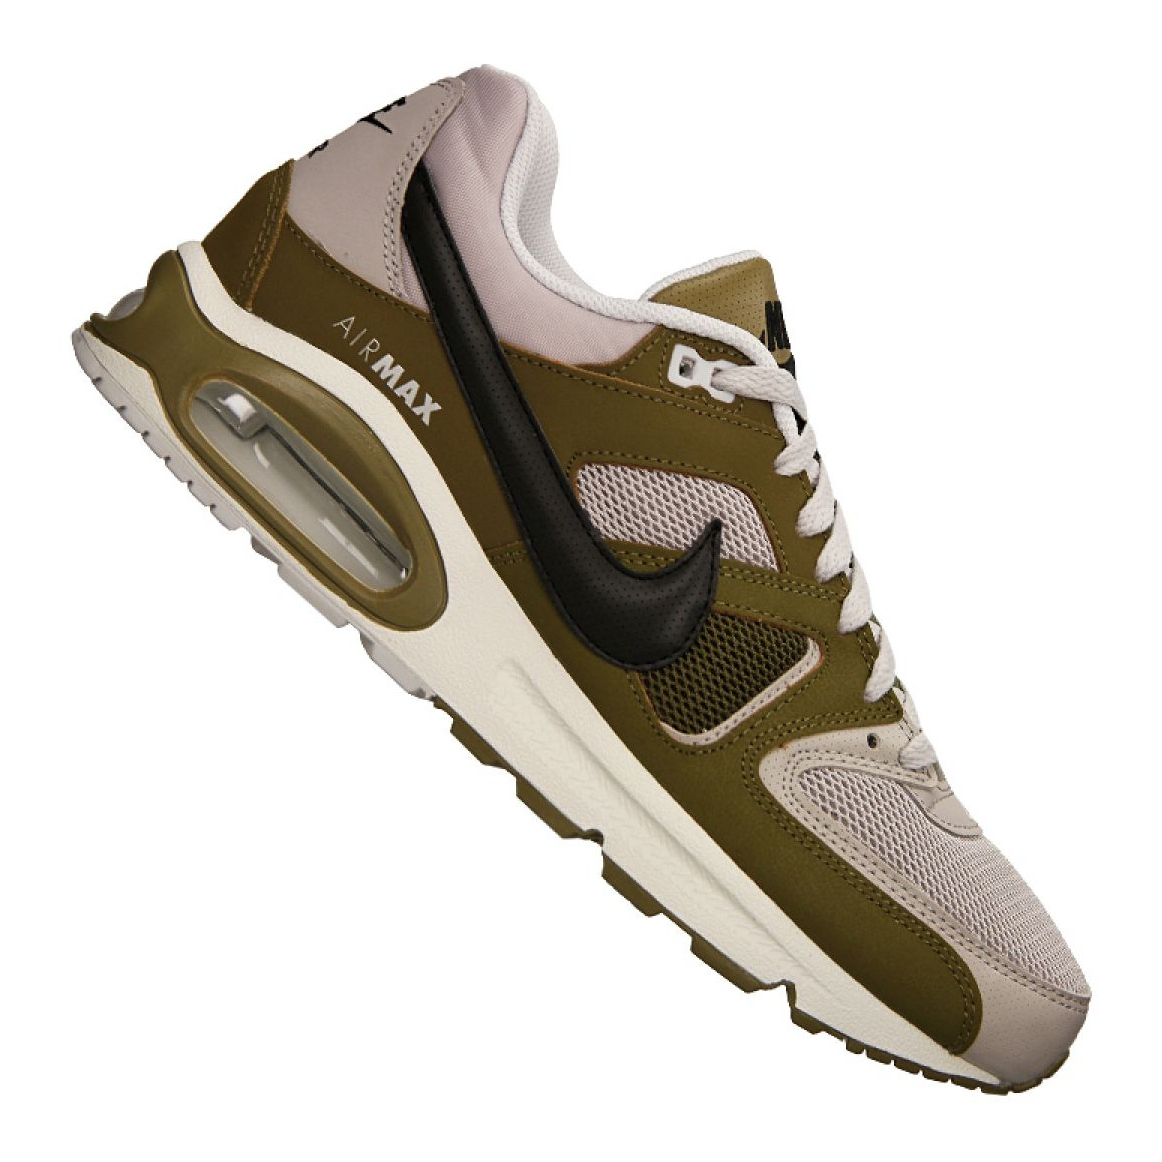 Details about Nike Air Max Command M 629993 201 shoes